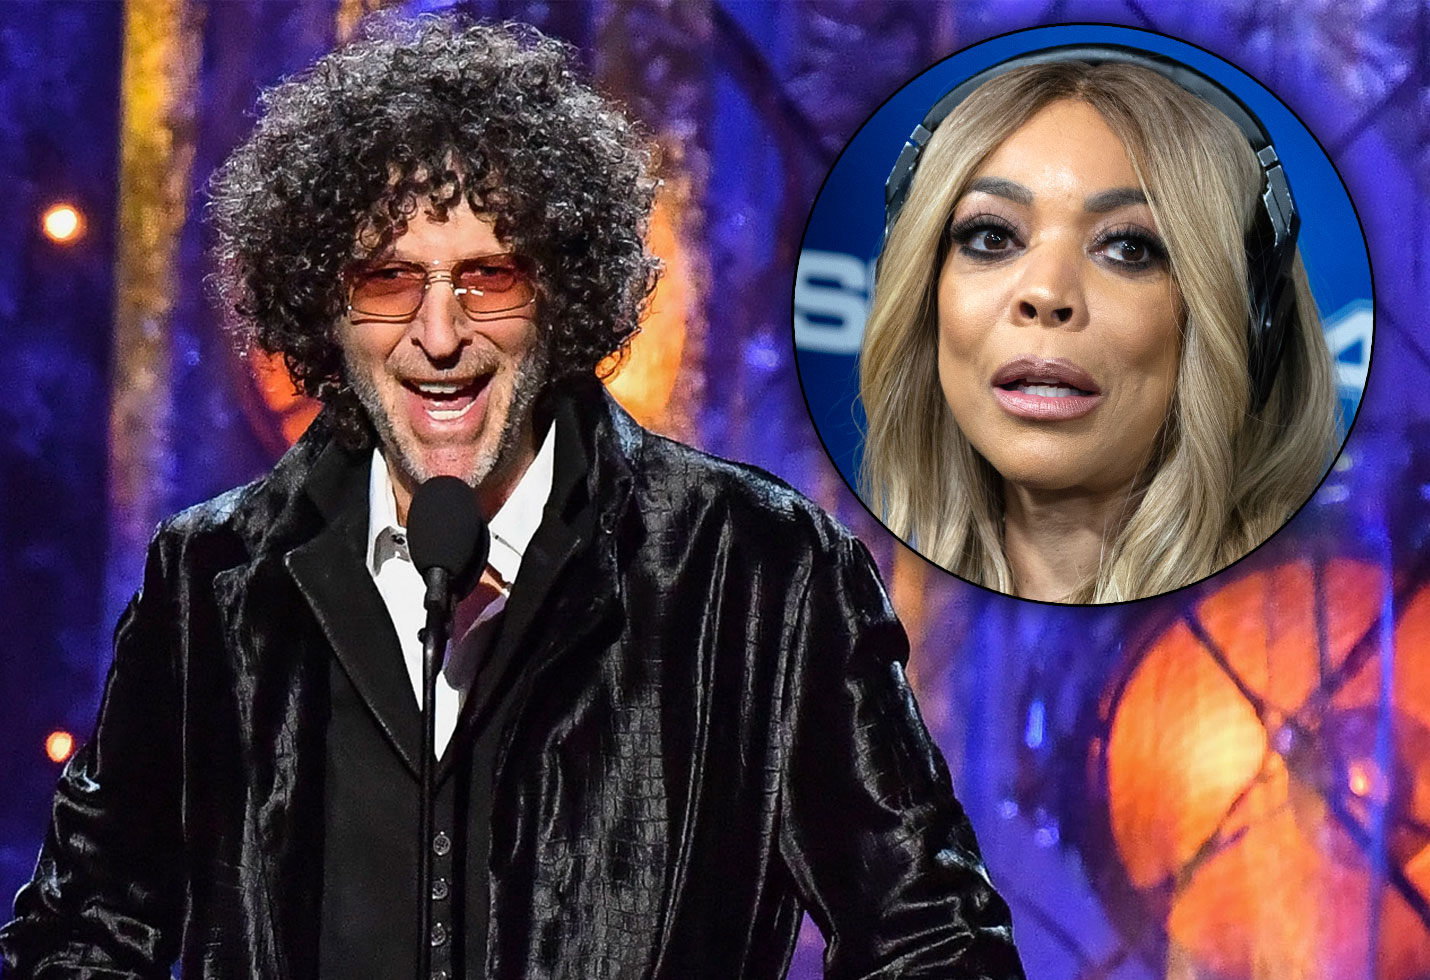 Howard stern slams wendy williams radio feud